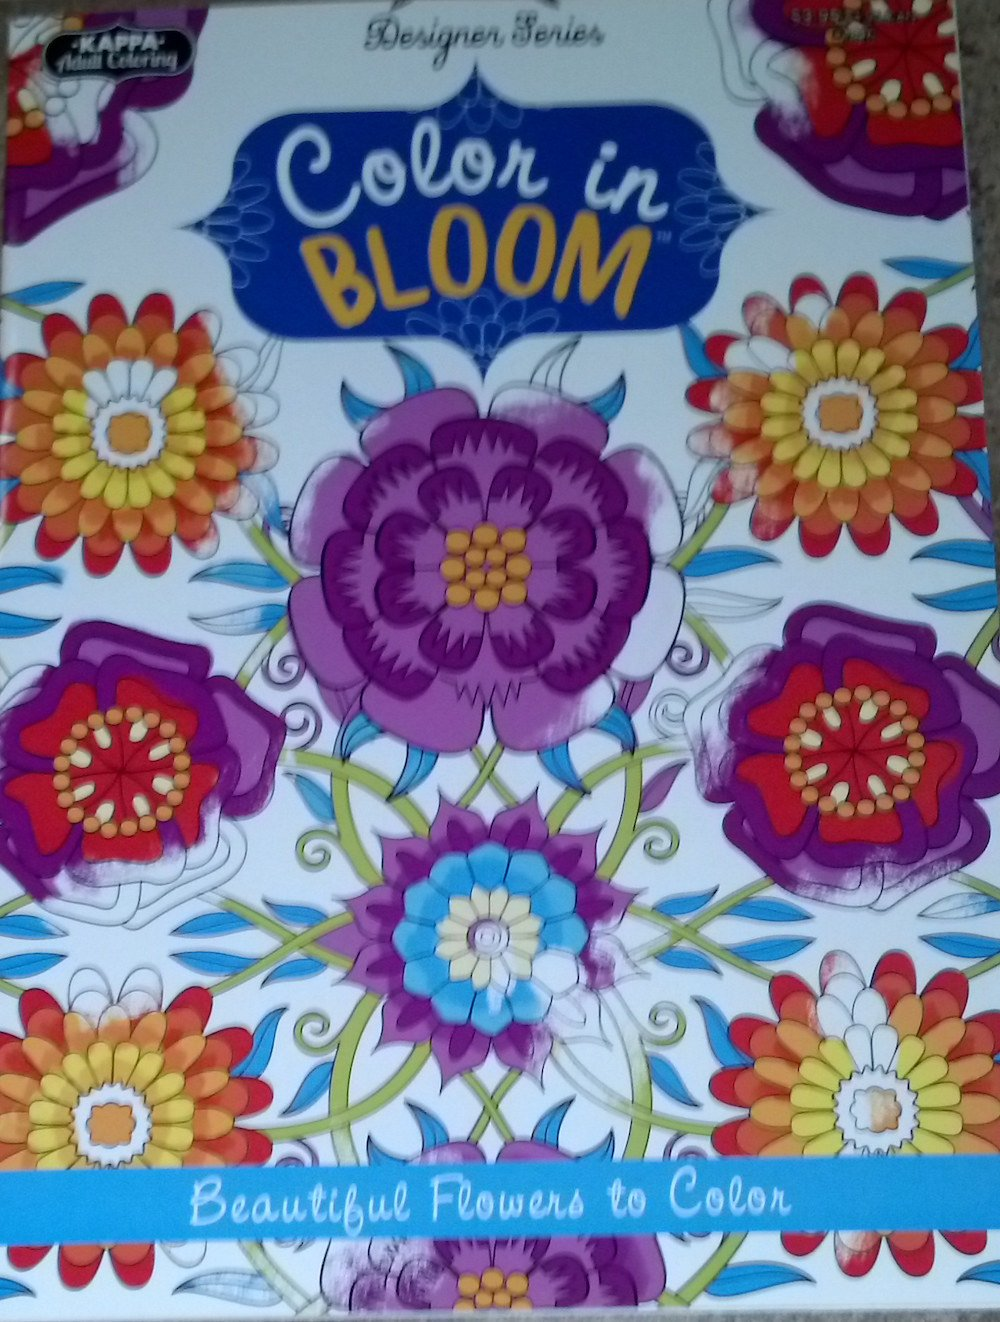 Color In Bloom Designer Series Beautiful Flowers To Color Adult Coloring Book pdf epub